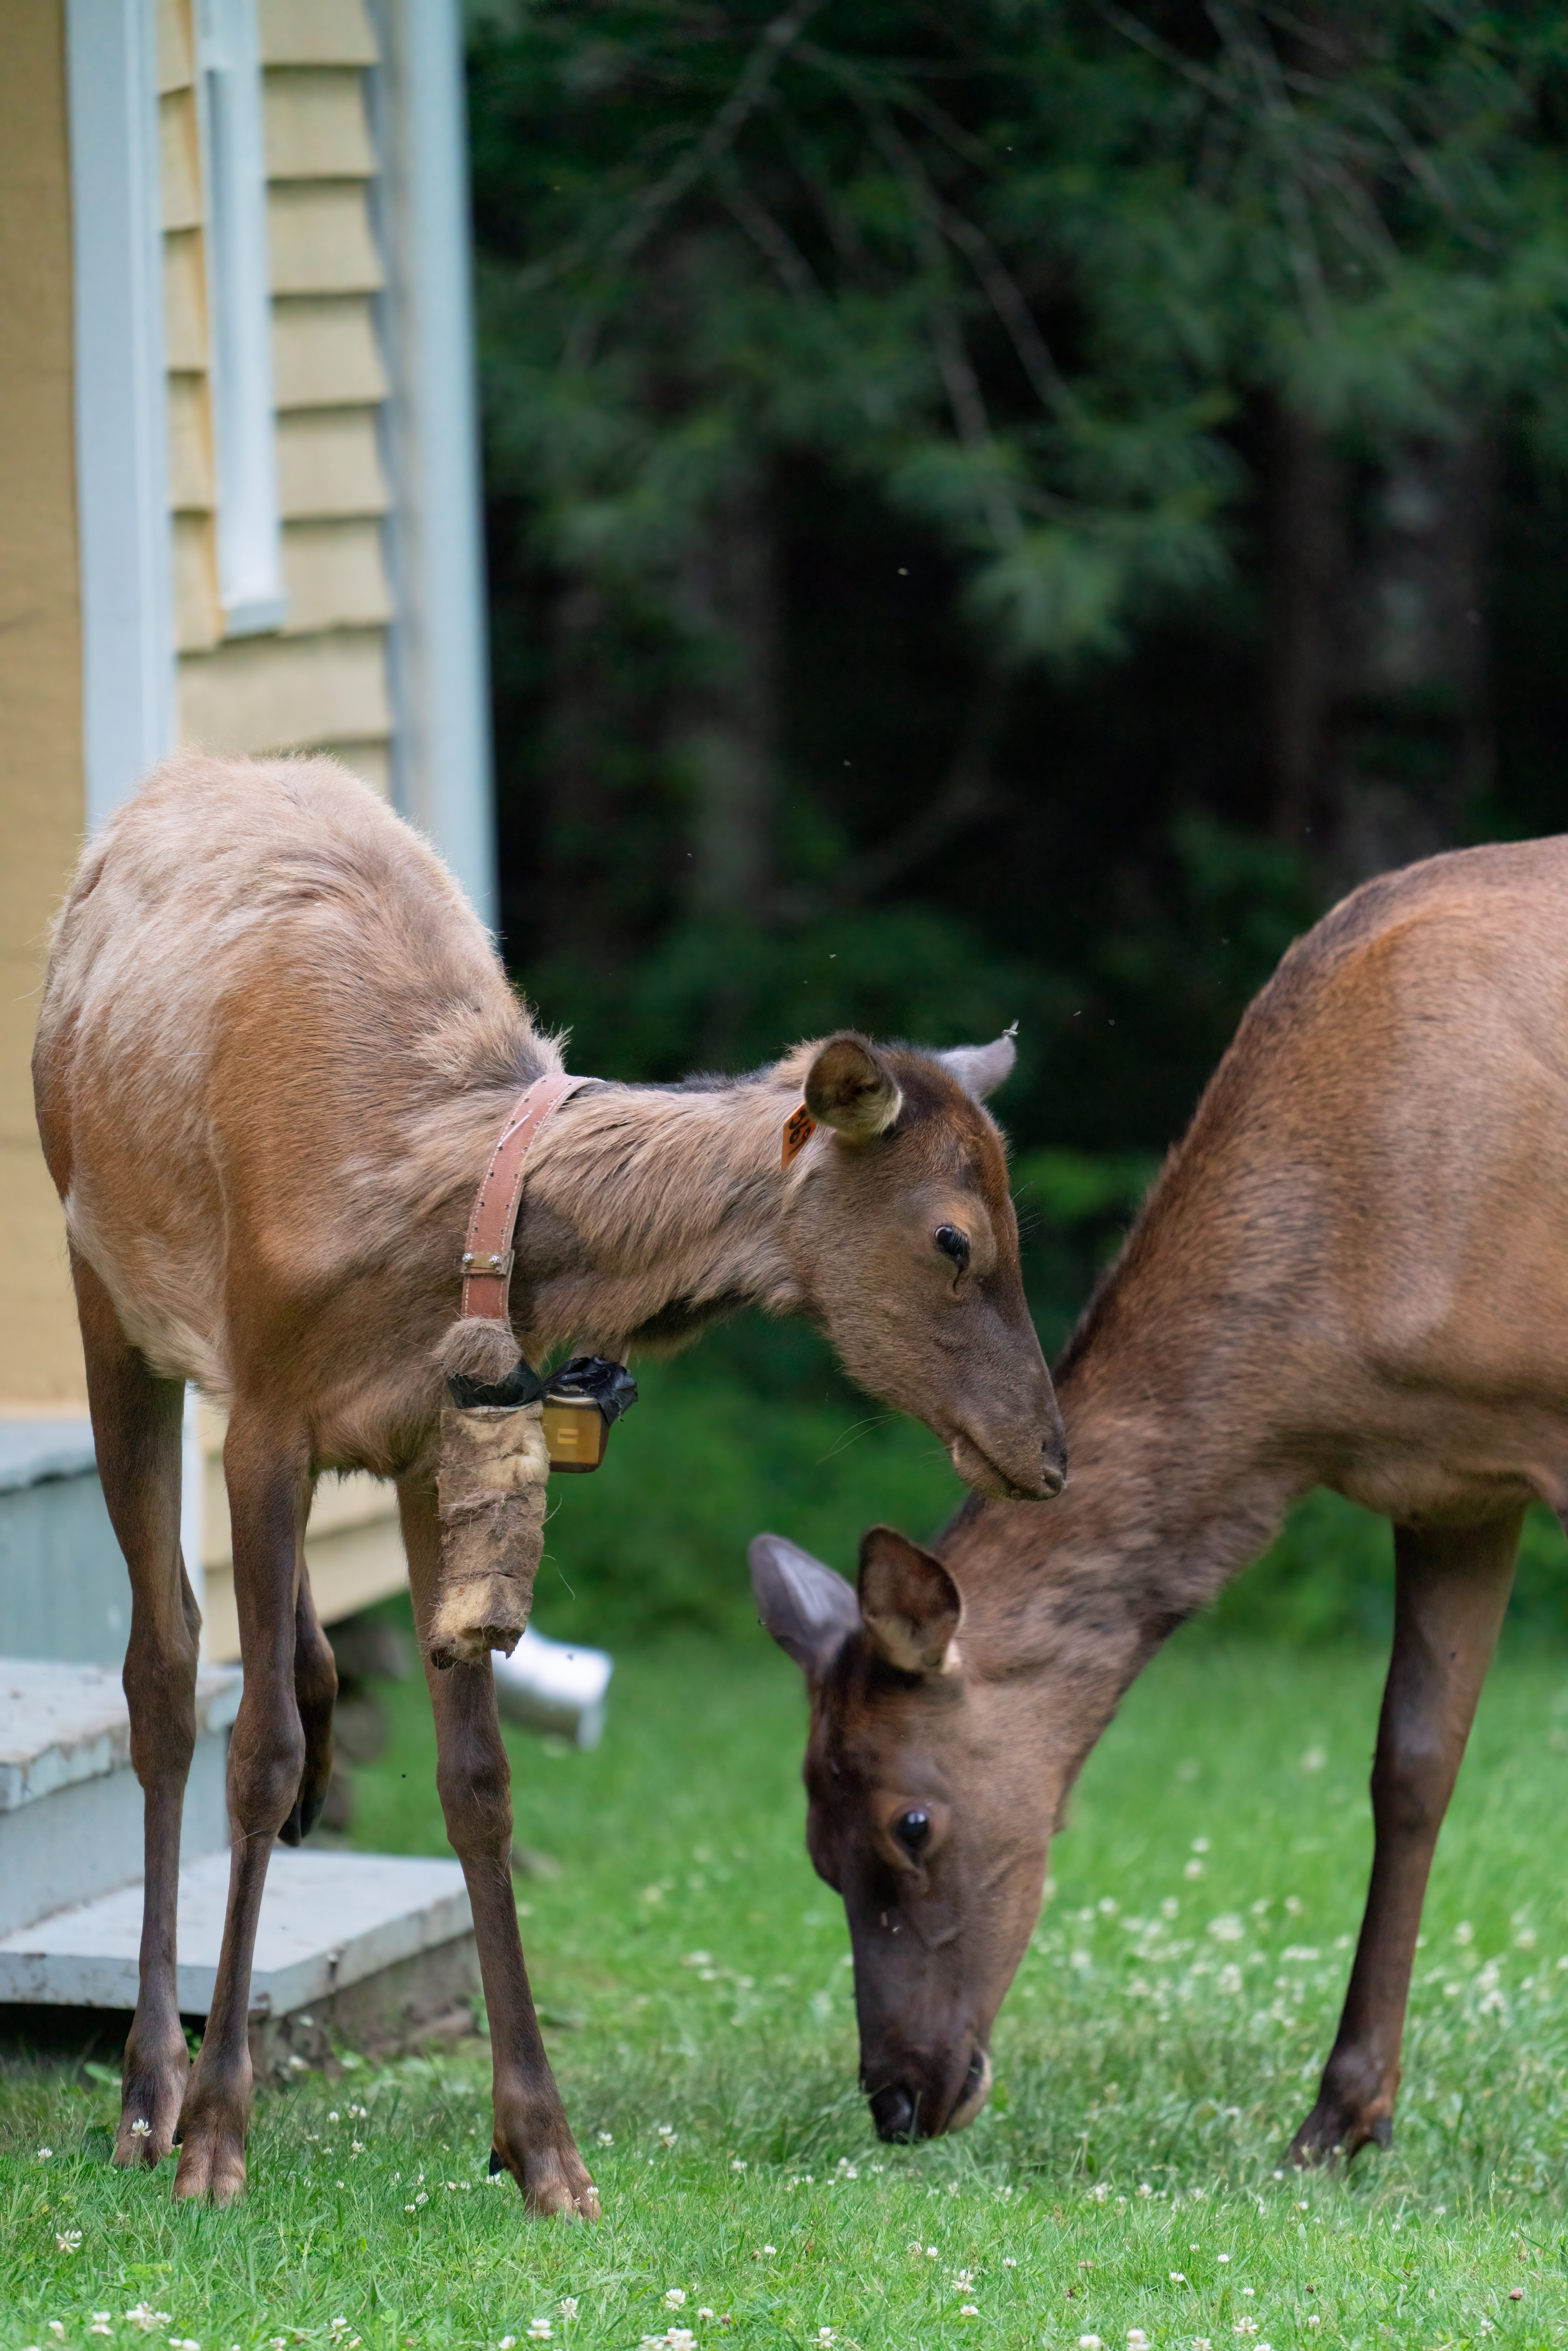 Elk of all ages visit the Palmer Place in Cataloochee on the North Carolina side of Great Smoky Mountains National Park. The collars around these young elks' necks are those used for tracking. Photo courtesy of Joye Ardyn Durham.